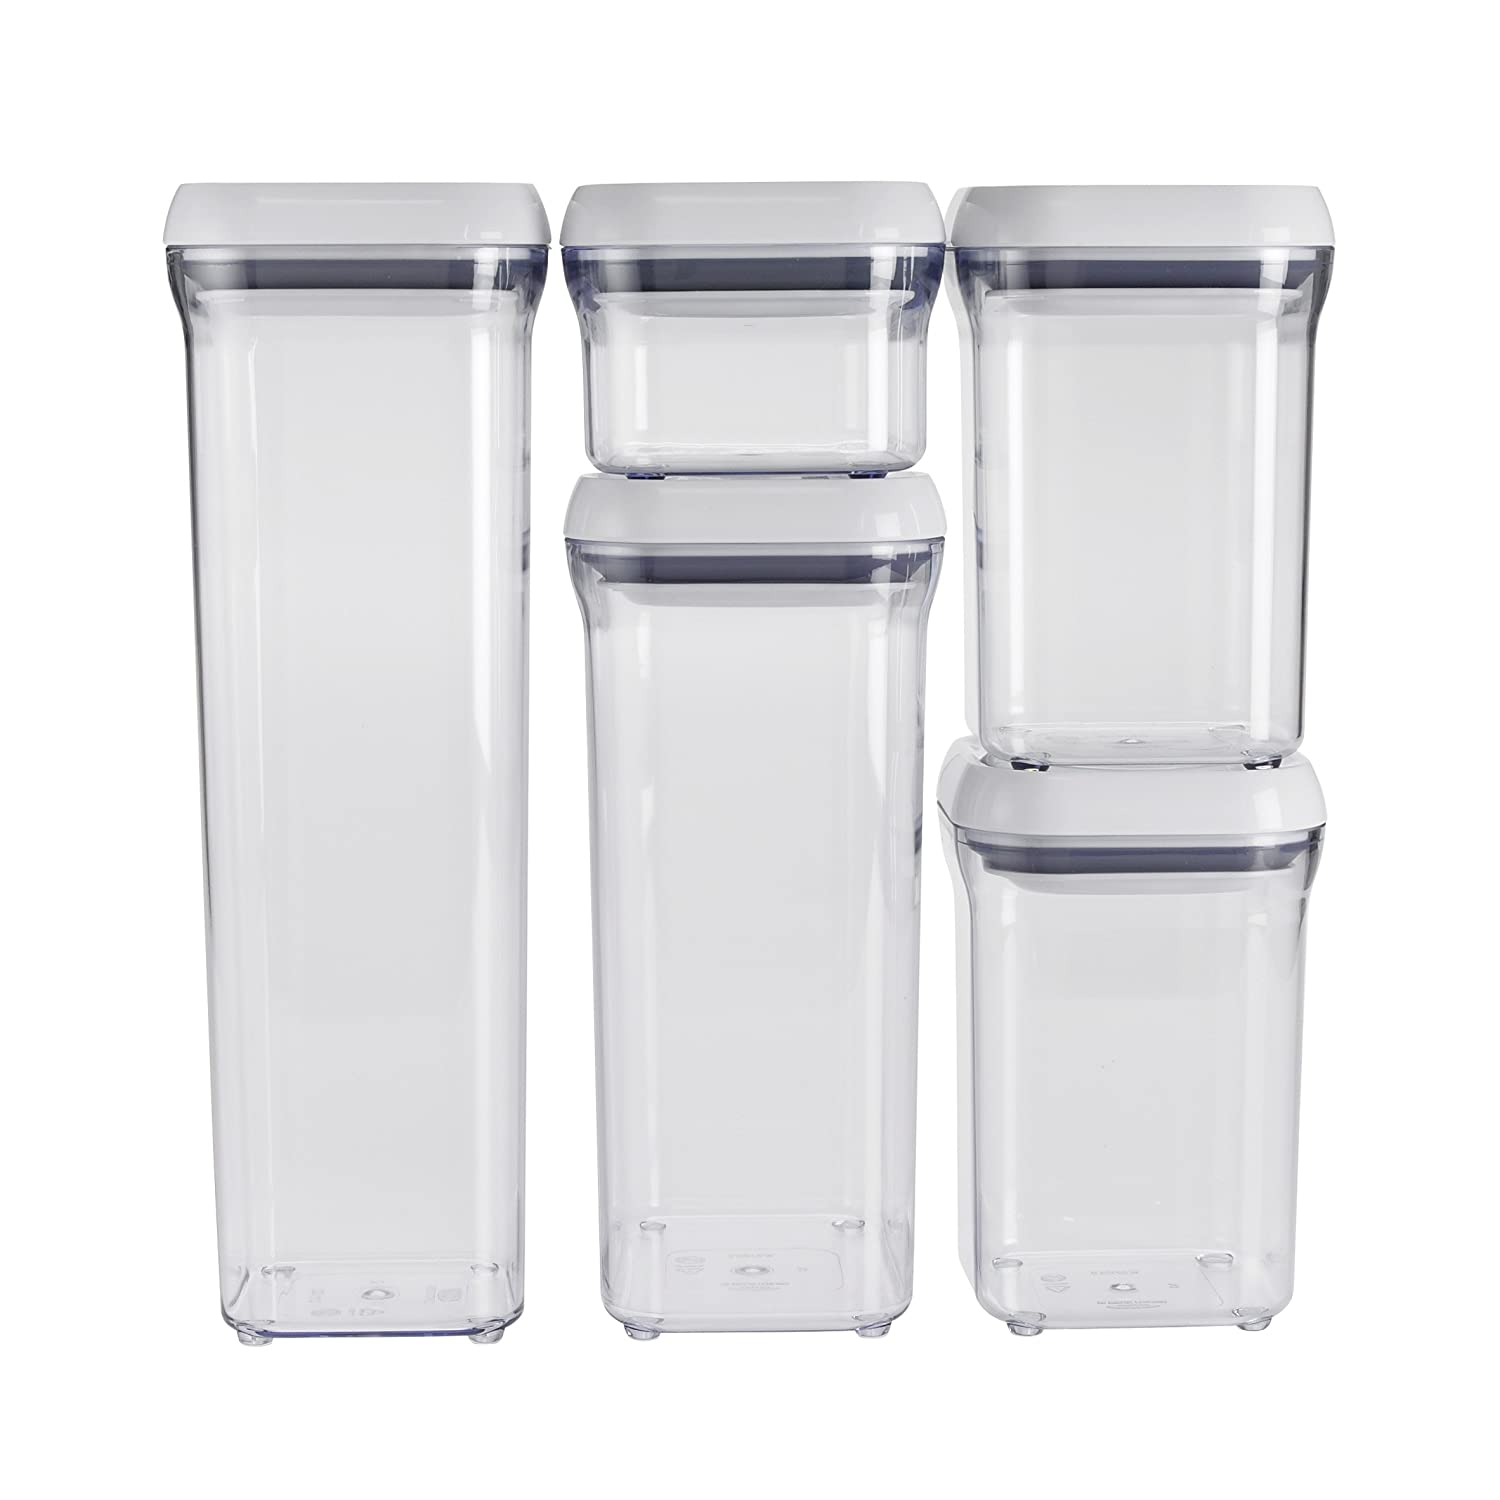 kitchen containers for sale amazoncom oxo good grips  piece pop container set kitchen storage and organization product sets kitchen amp dining